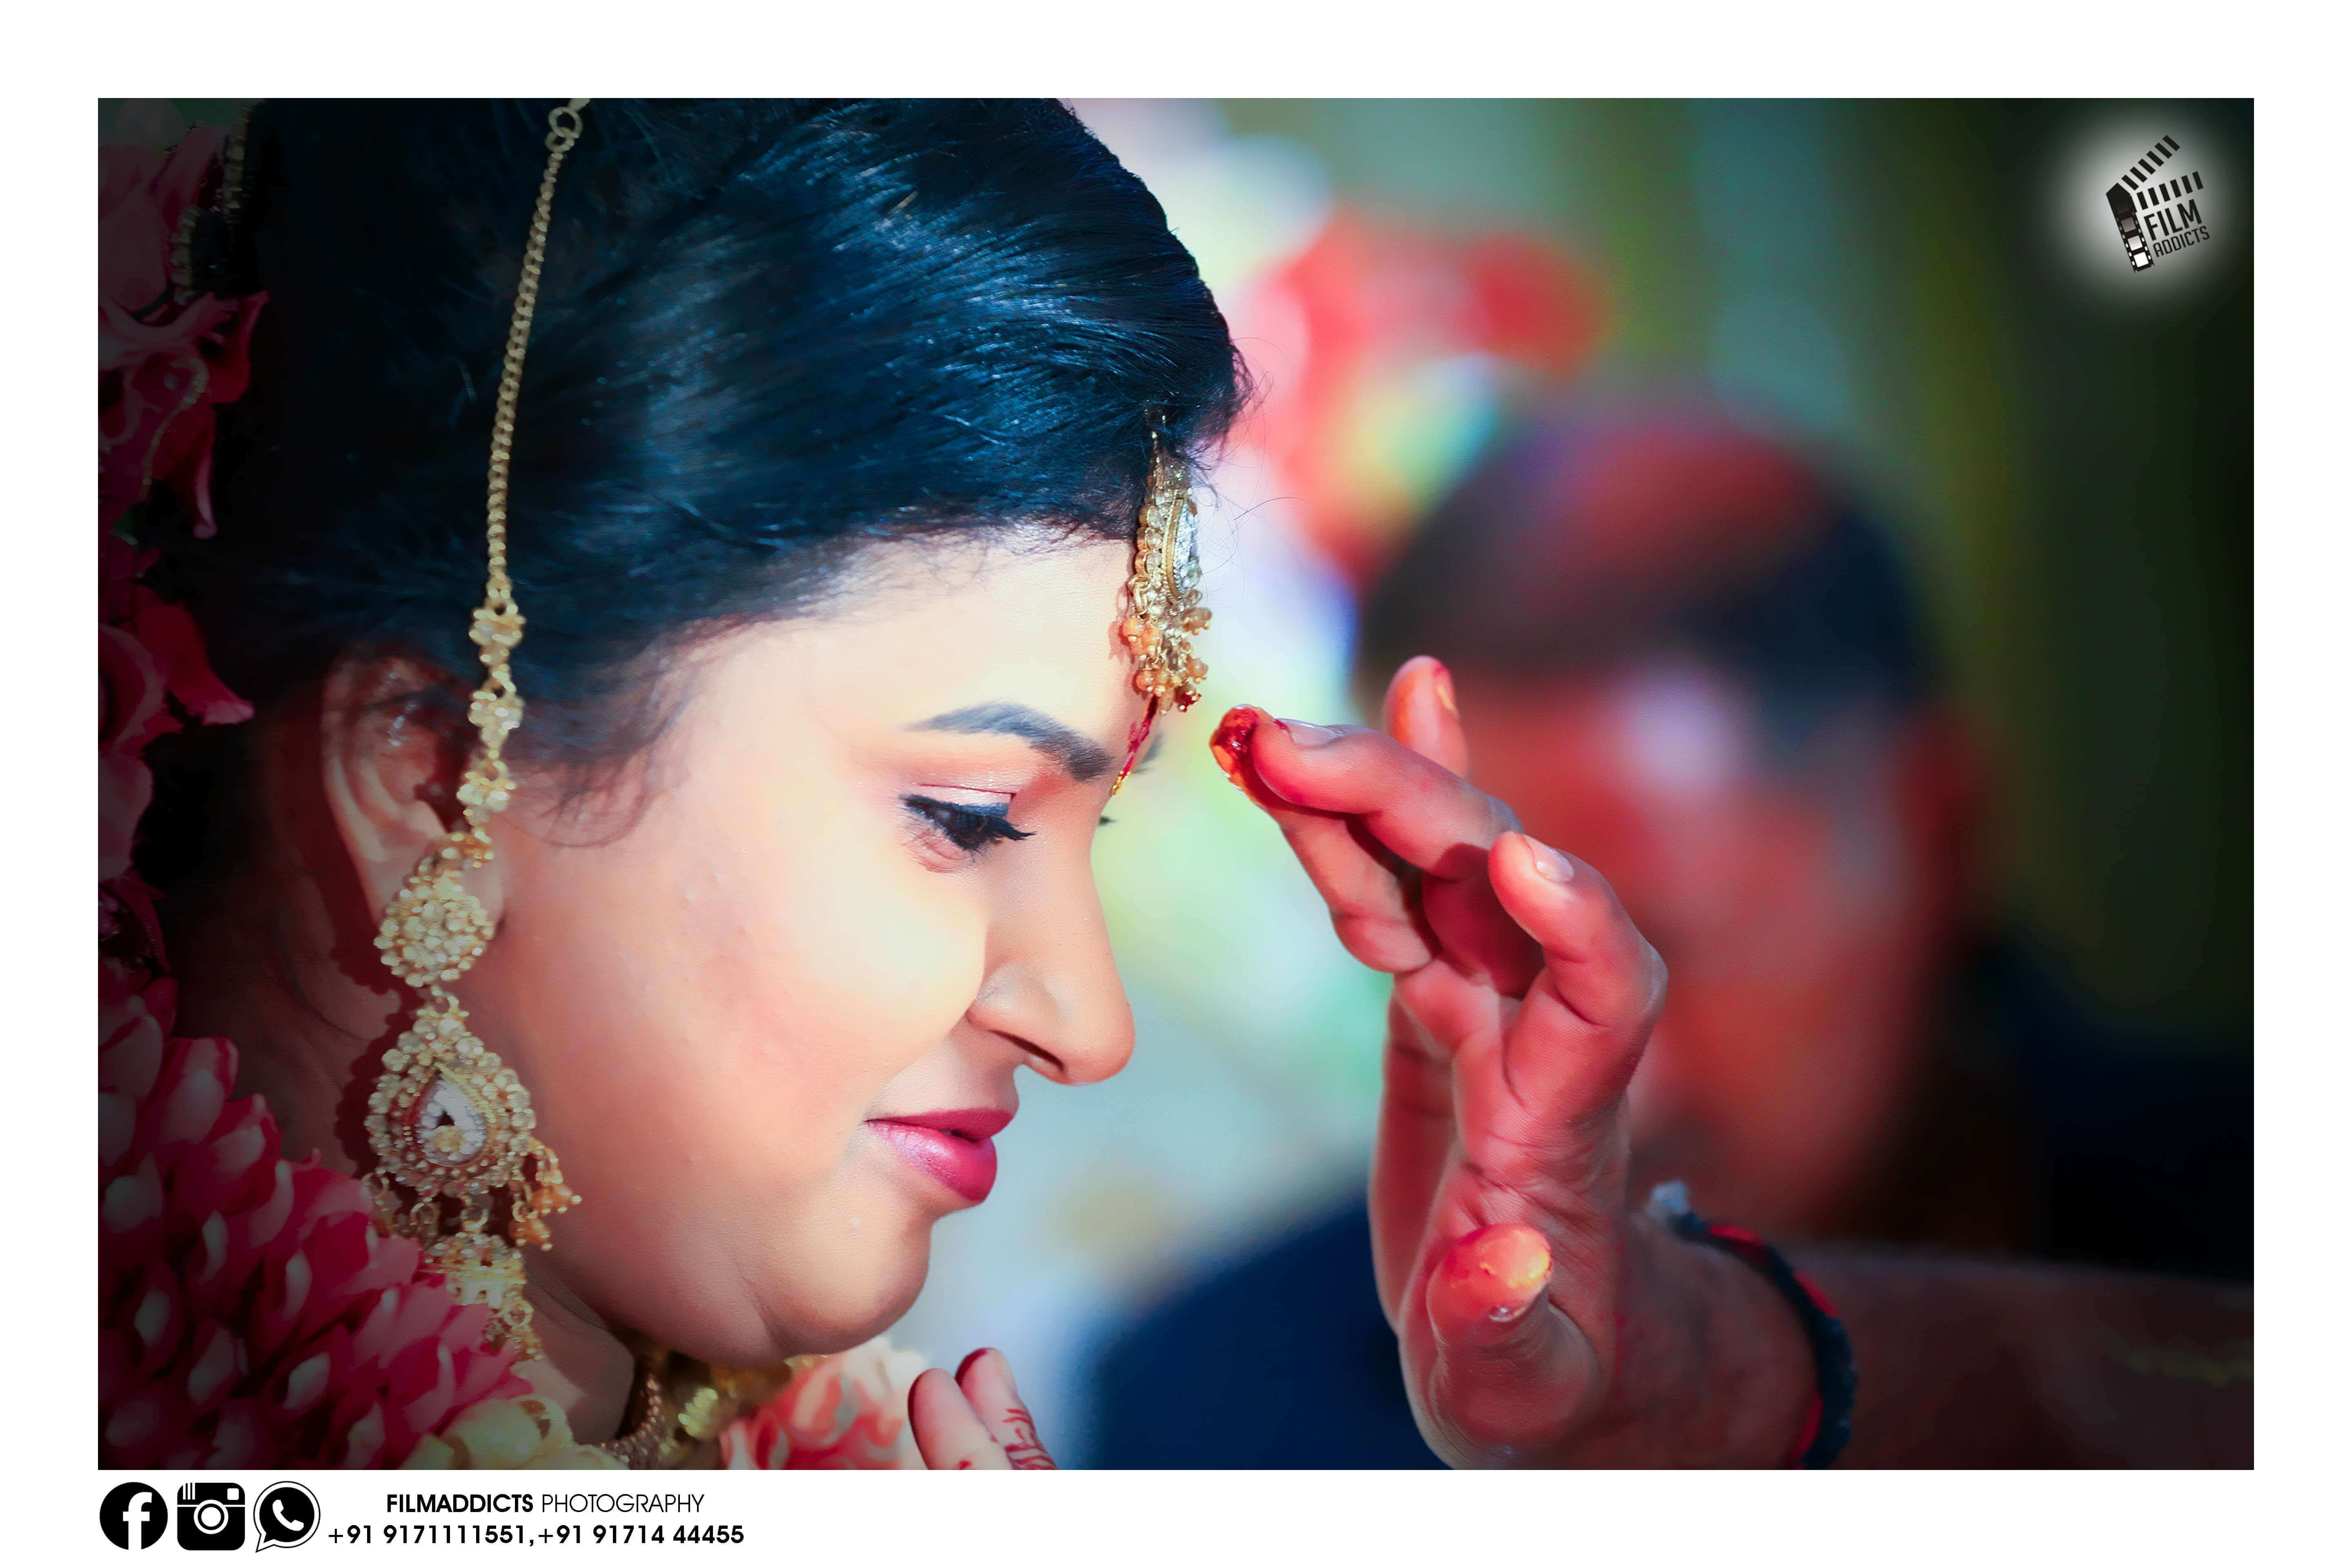 best-candid-photographercandid-photographer-in-maduraidrone-photographer-in-maduraihelicam-photographer-in-madurai candid-wedding-photographers-in-maduraiphotographers-in-maduraiprofessional-wedding-photographers-in-madurai-11top-wedding-filmmakers-in-maduraiwedding-cinematographers-in-madurai-2wedding-cinimatography-in-maduraiwedding-photographers-in-maduraiwedding-teaser-in-madurai asian-wedding-photography-in-madurai best-candid-photographers-in-madurai best-candid-videographers-in-madurai best-photographers-in-madurai best-wedding-photographers-in-madurai best-nadar-wedding-photography-in-madurai candid-photographers-in-madurai-2 destination-wedding-photographers-in-madurai fashion-photographers-in-madurai madurai-famous-stage-decorations